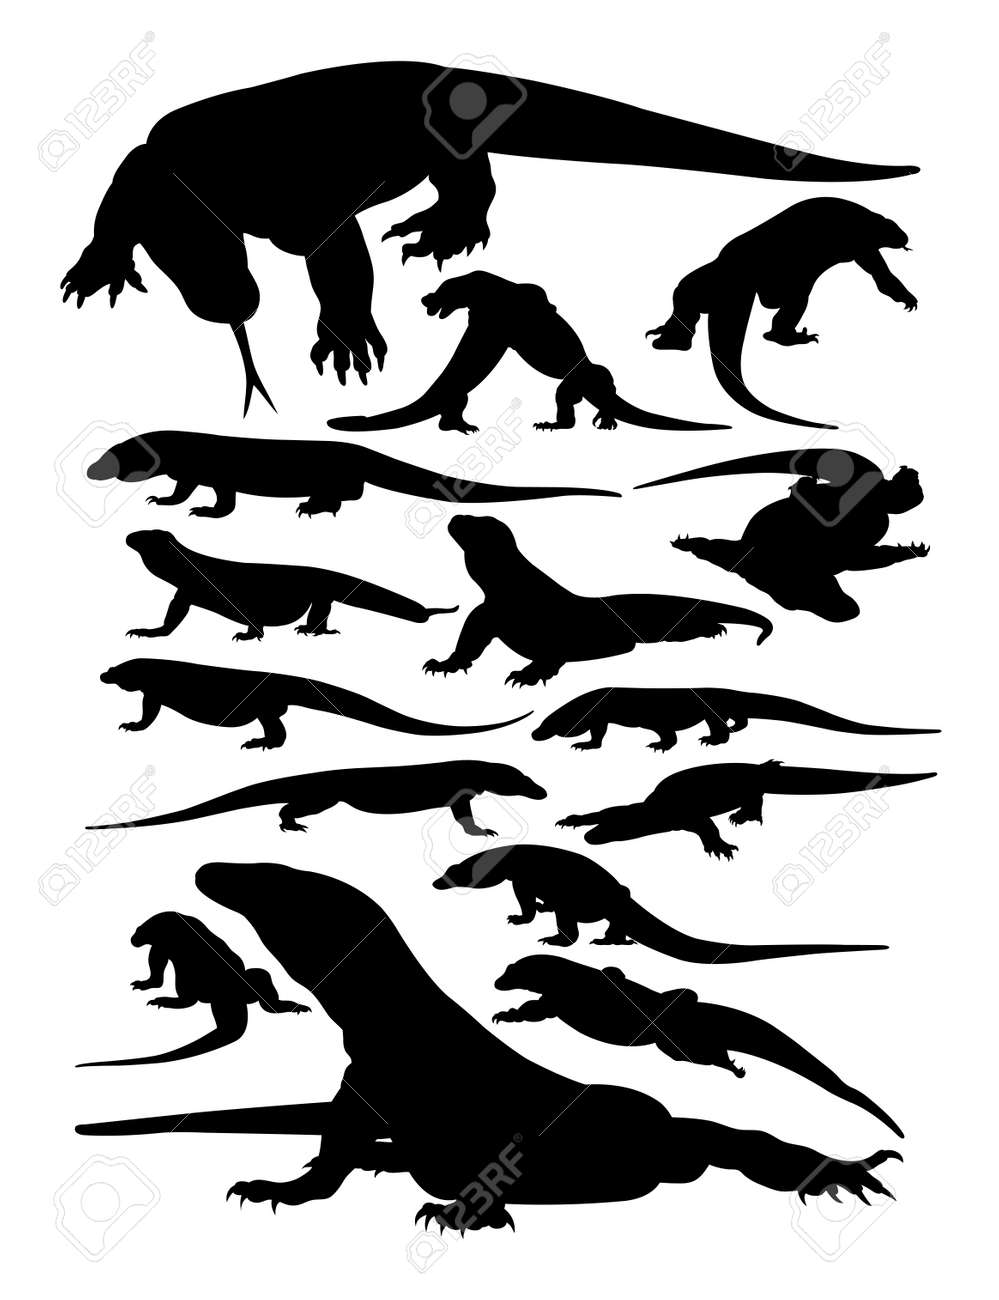 Komodo animal silhouettes. Good use for symbol, logo, web icon, mascot, sign, or any design you want. - 117620341